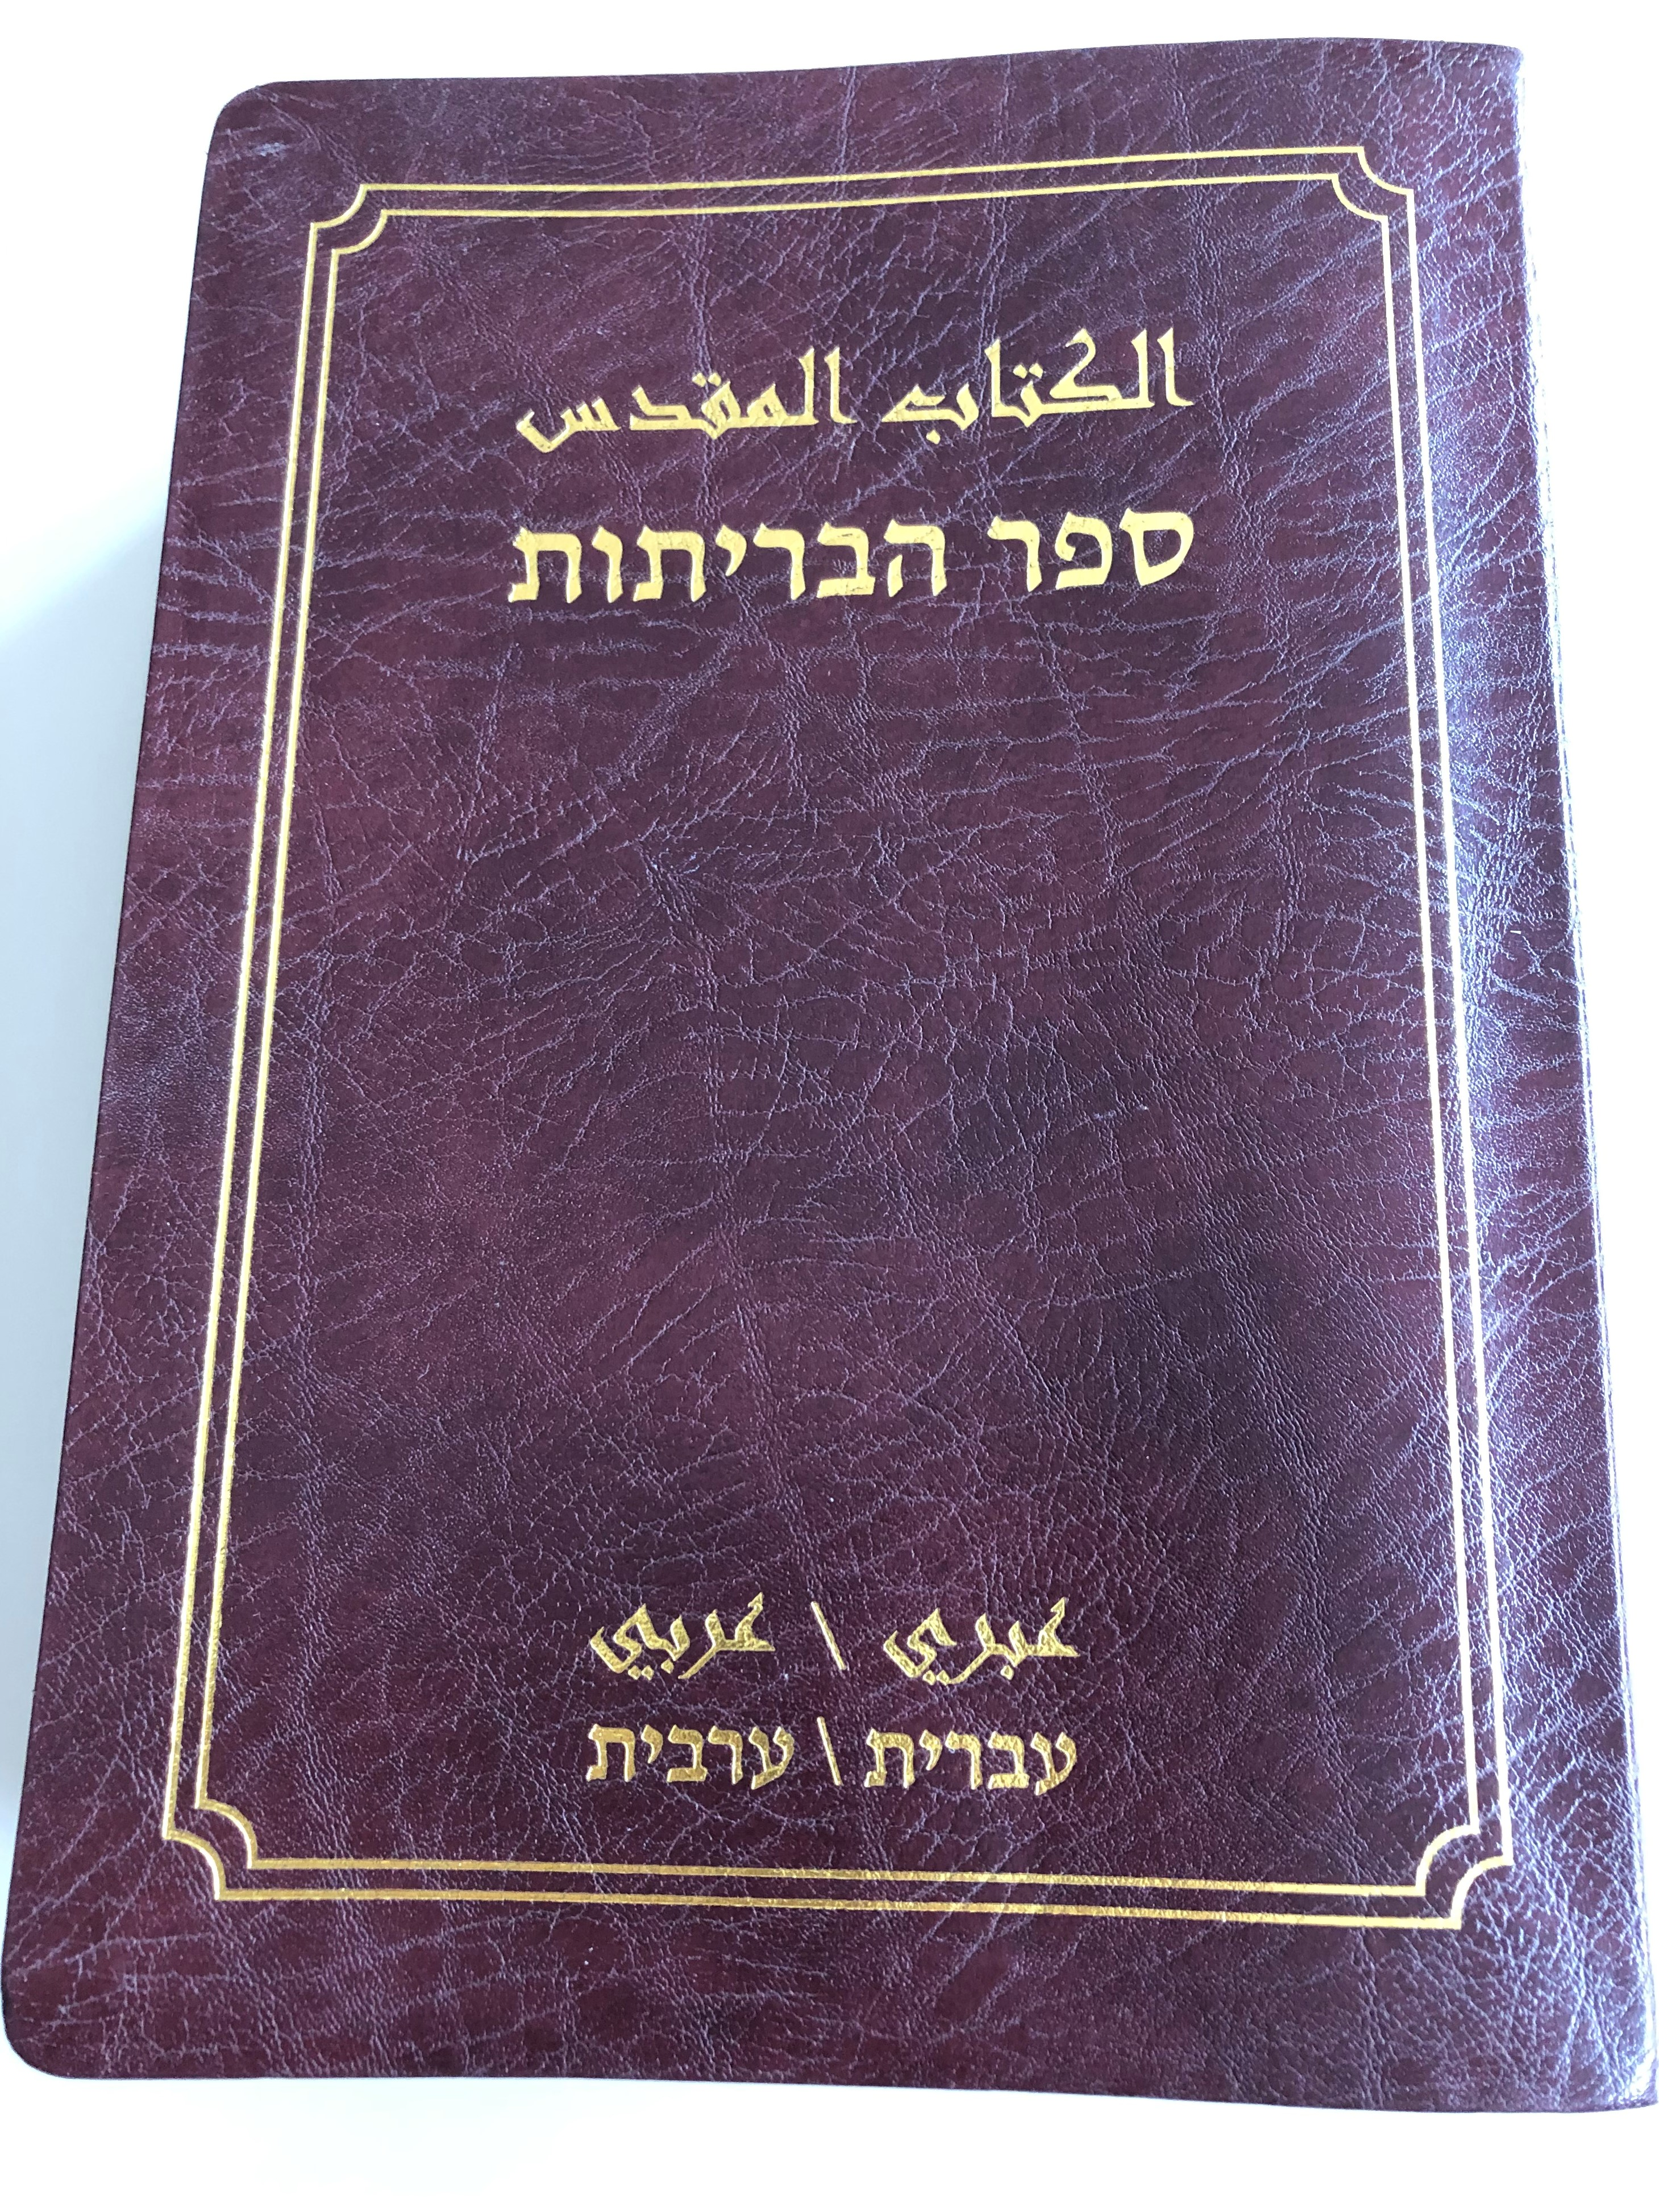 holy-bible-in-hebrew-and-arabic-1.jpg